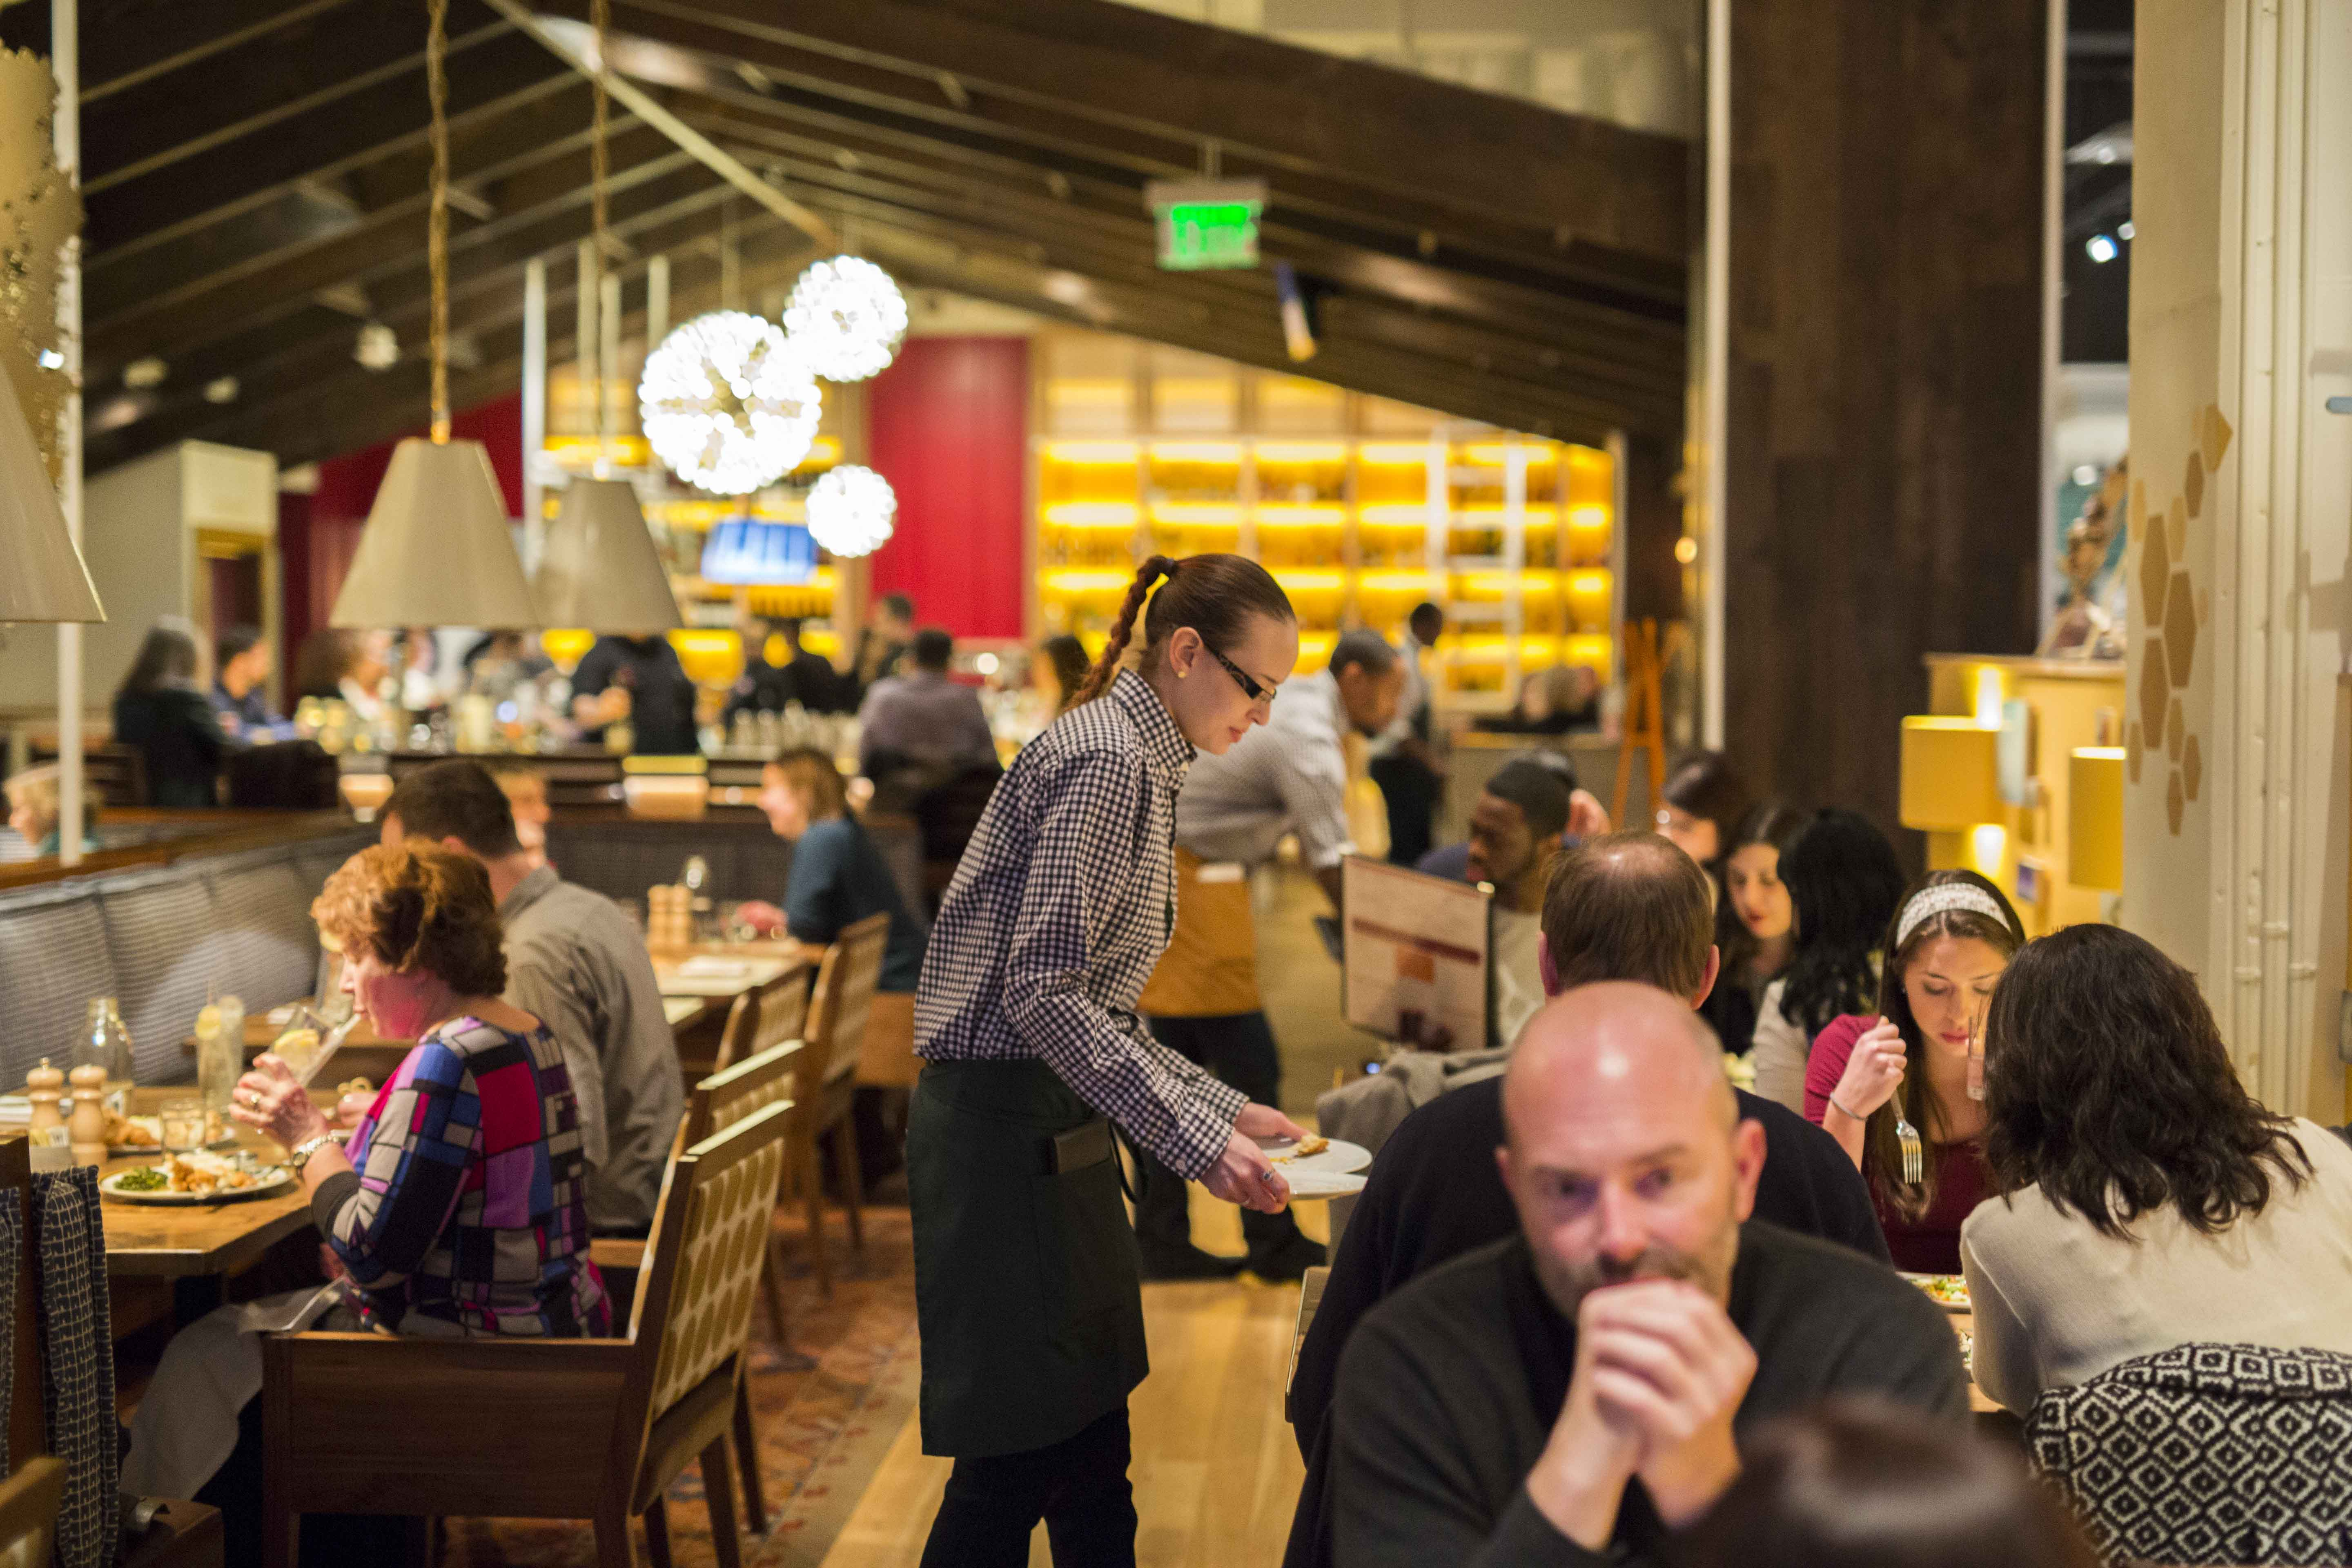 More than 1,000 diners visited Founding Farmers Tysons on opening day, and guests have been averages 1,200 daily. (Photo: Founding Farmes)